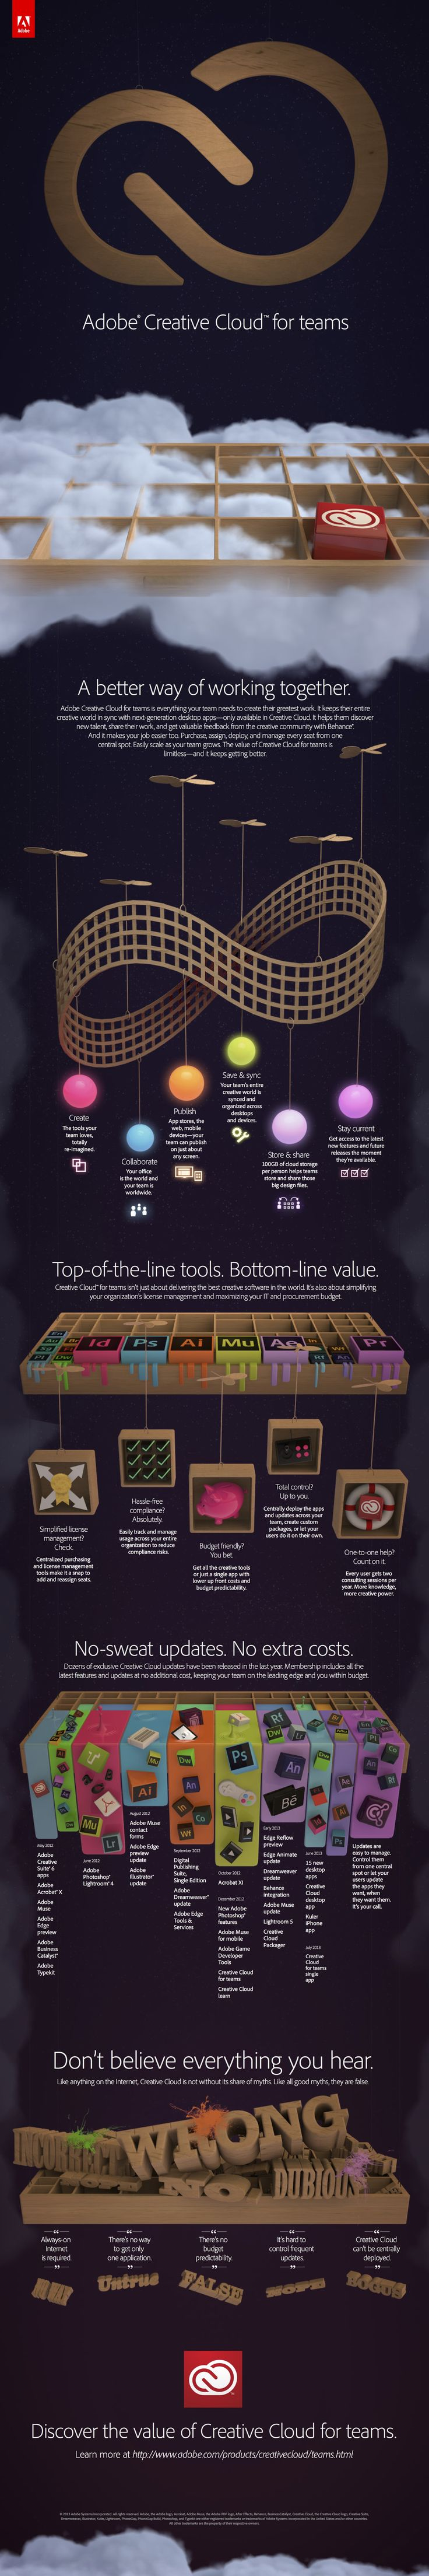 Creative Cloud for teams – what's it all about? [INFOGRAPHIC]